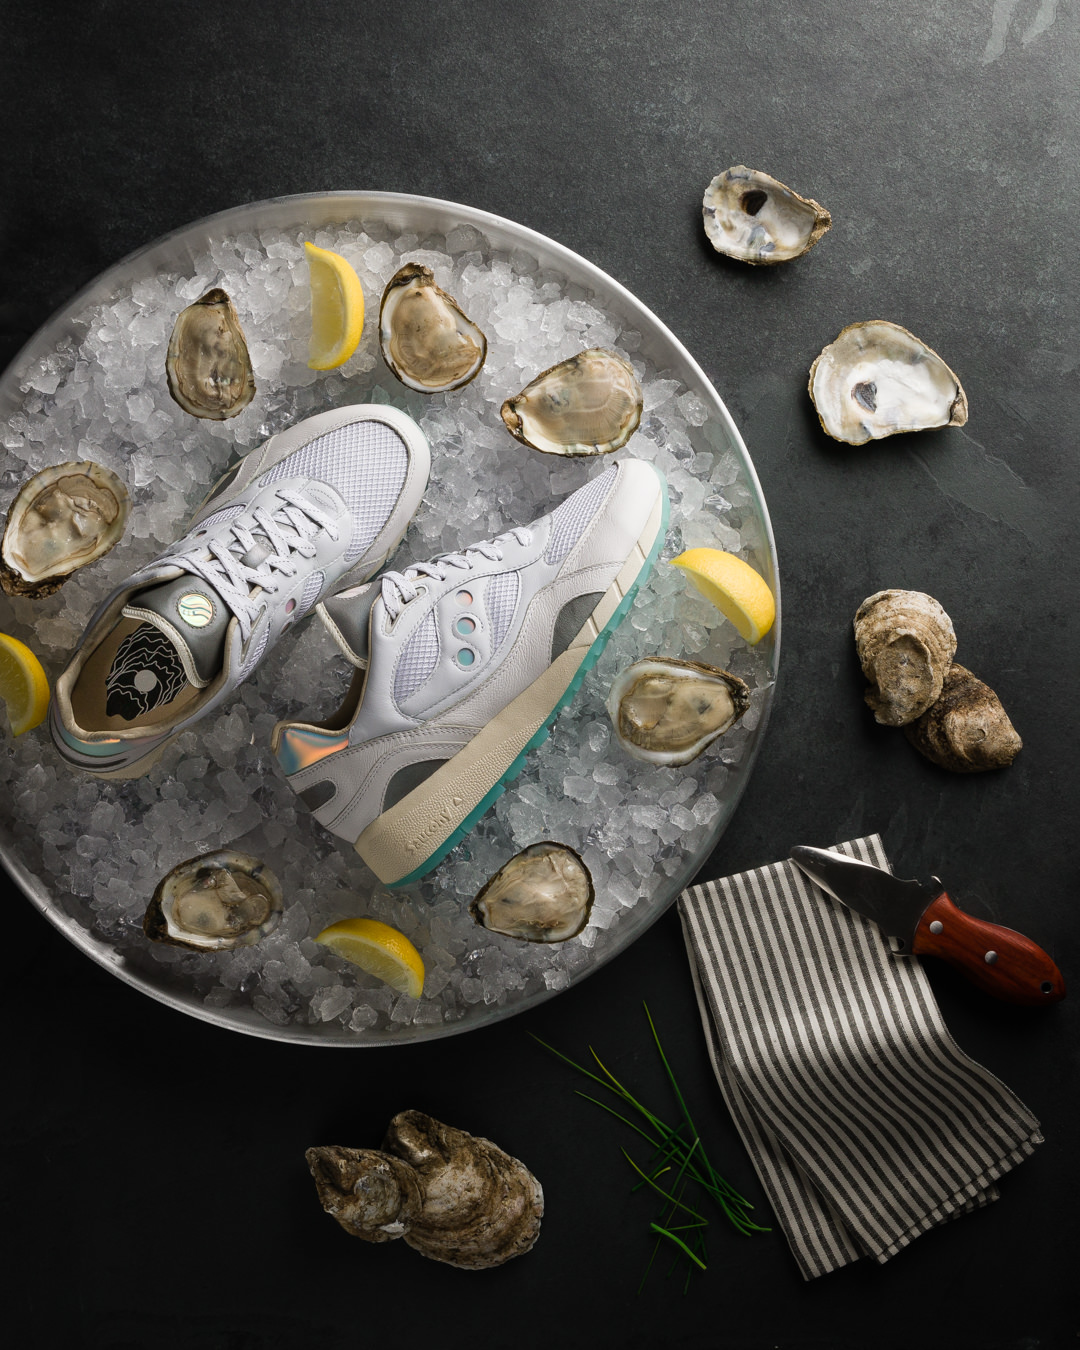 Saucony - Oyster Colorway Campaign